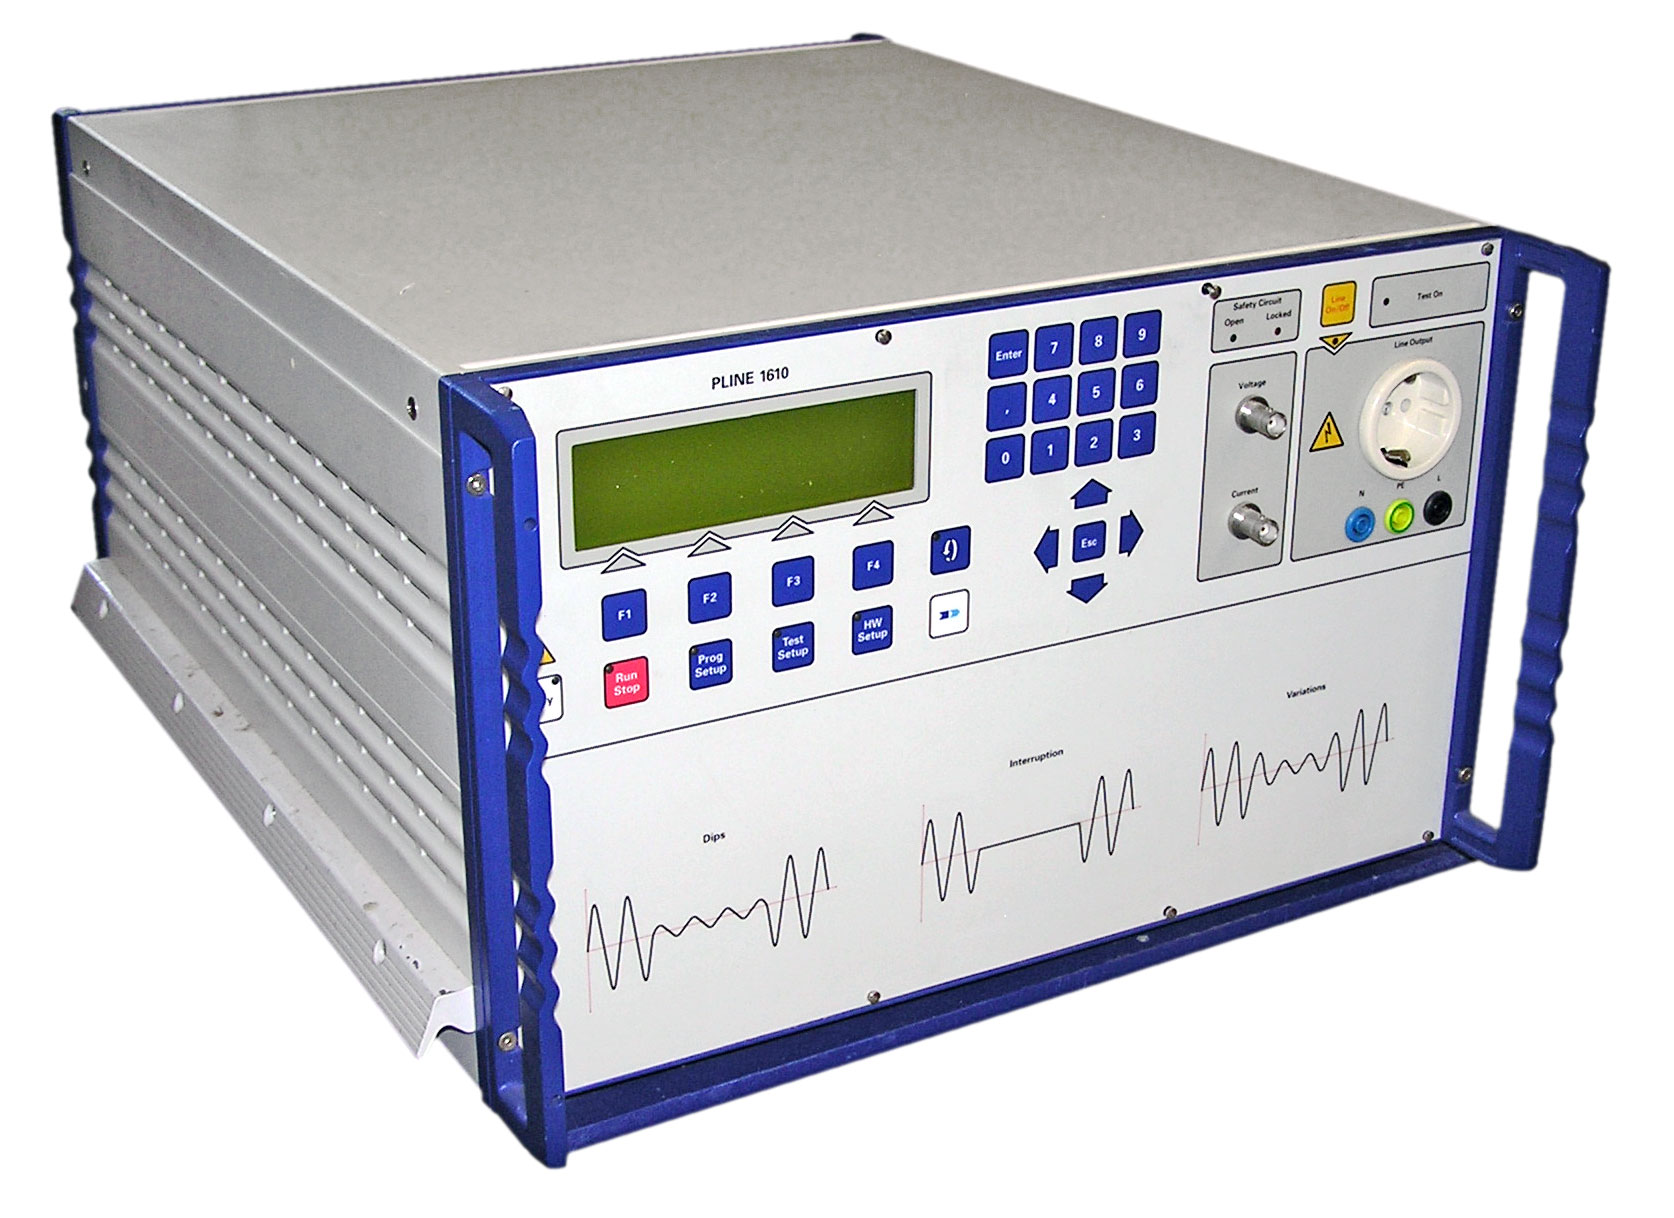 Rent, lease, rent to own Tester For Voltage Dips, Interruptions and Variations for IEC 6100-4-11